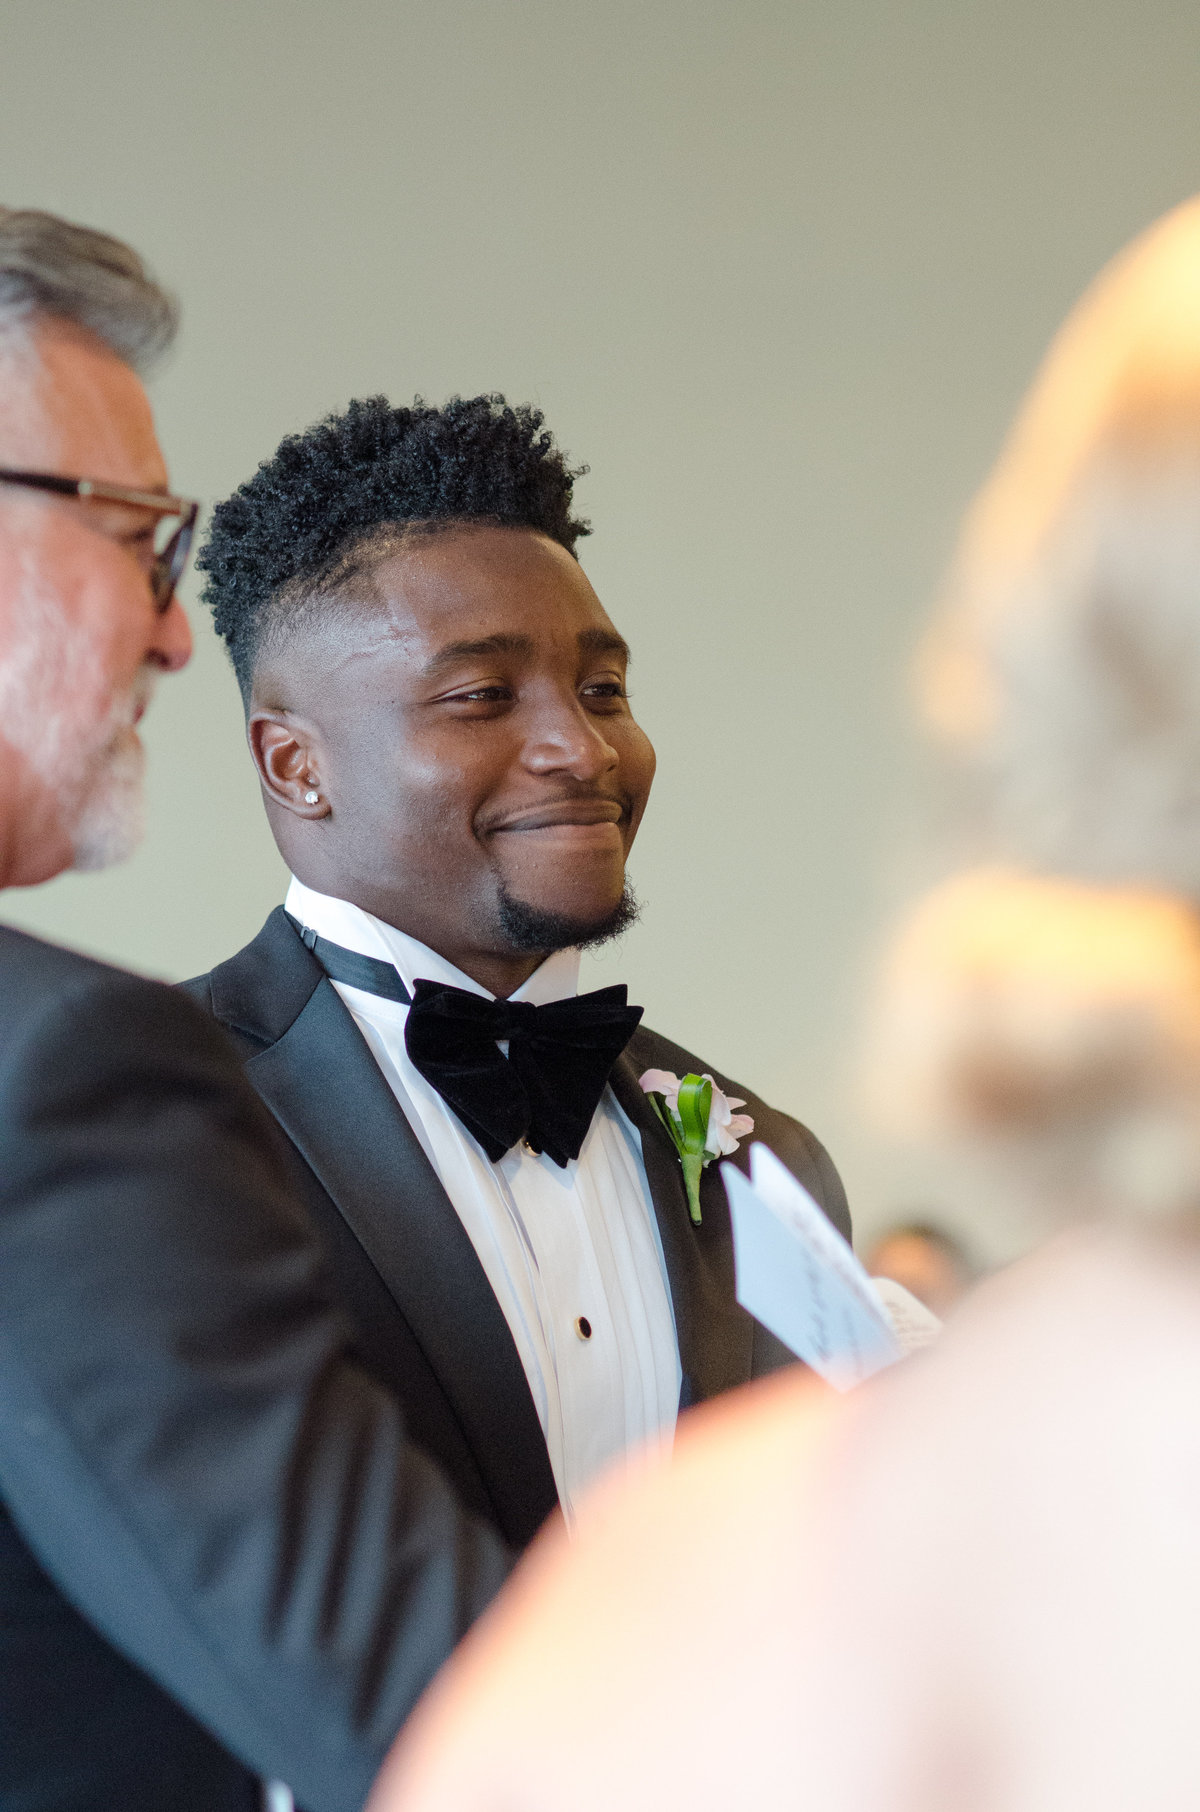 NFL Miami Dolphins Brandon Radcliff ShaKyra Radcliff Briza on the Bay Wedding Andrea Arostegui Photography-138